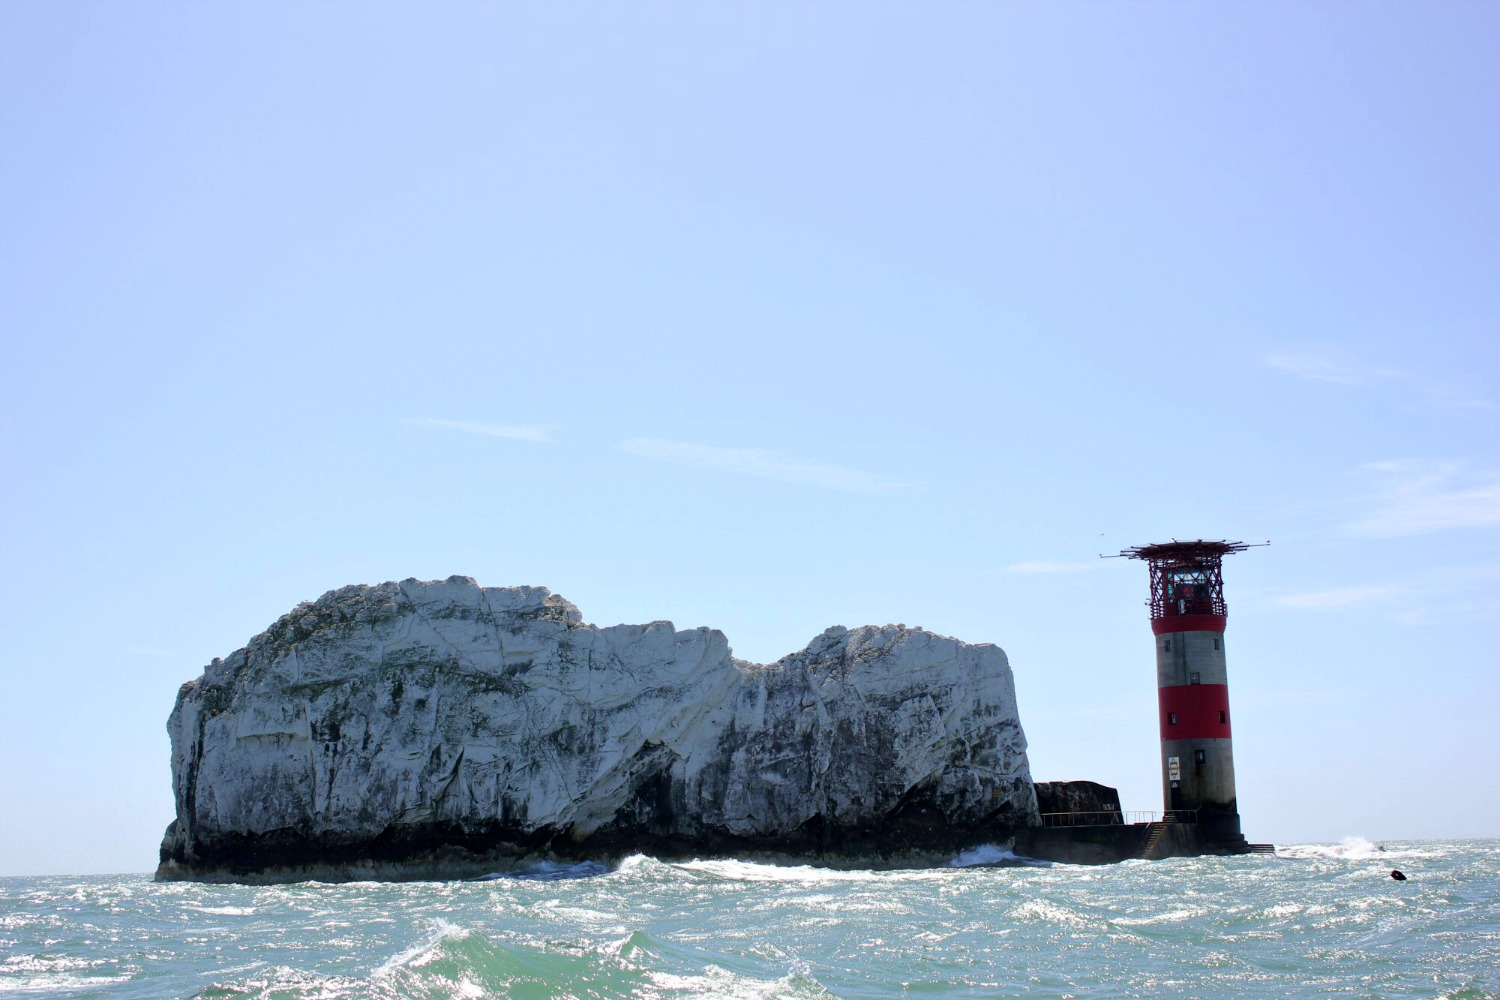 A view to The Needles and lighthouse from our boat - discovering the Isle of Wight coast